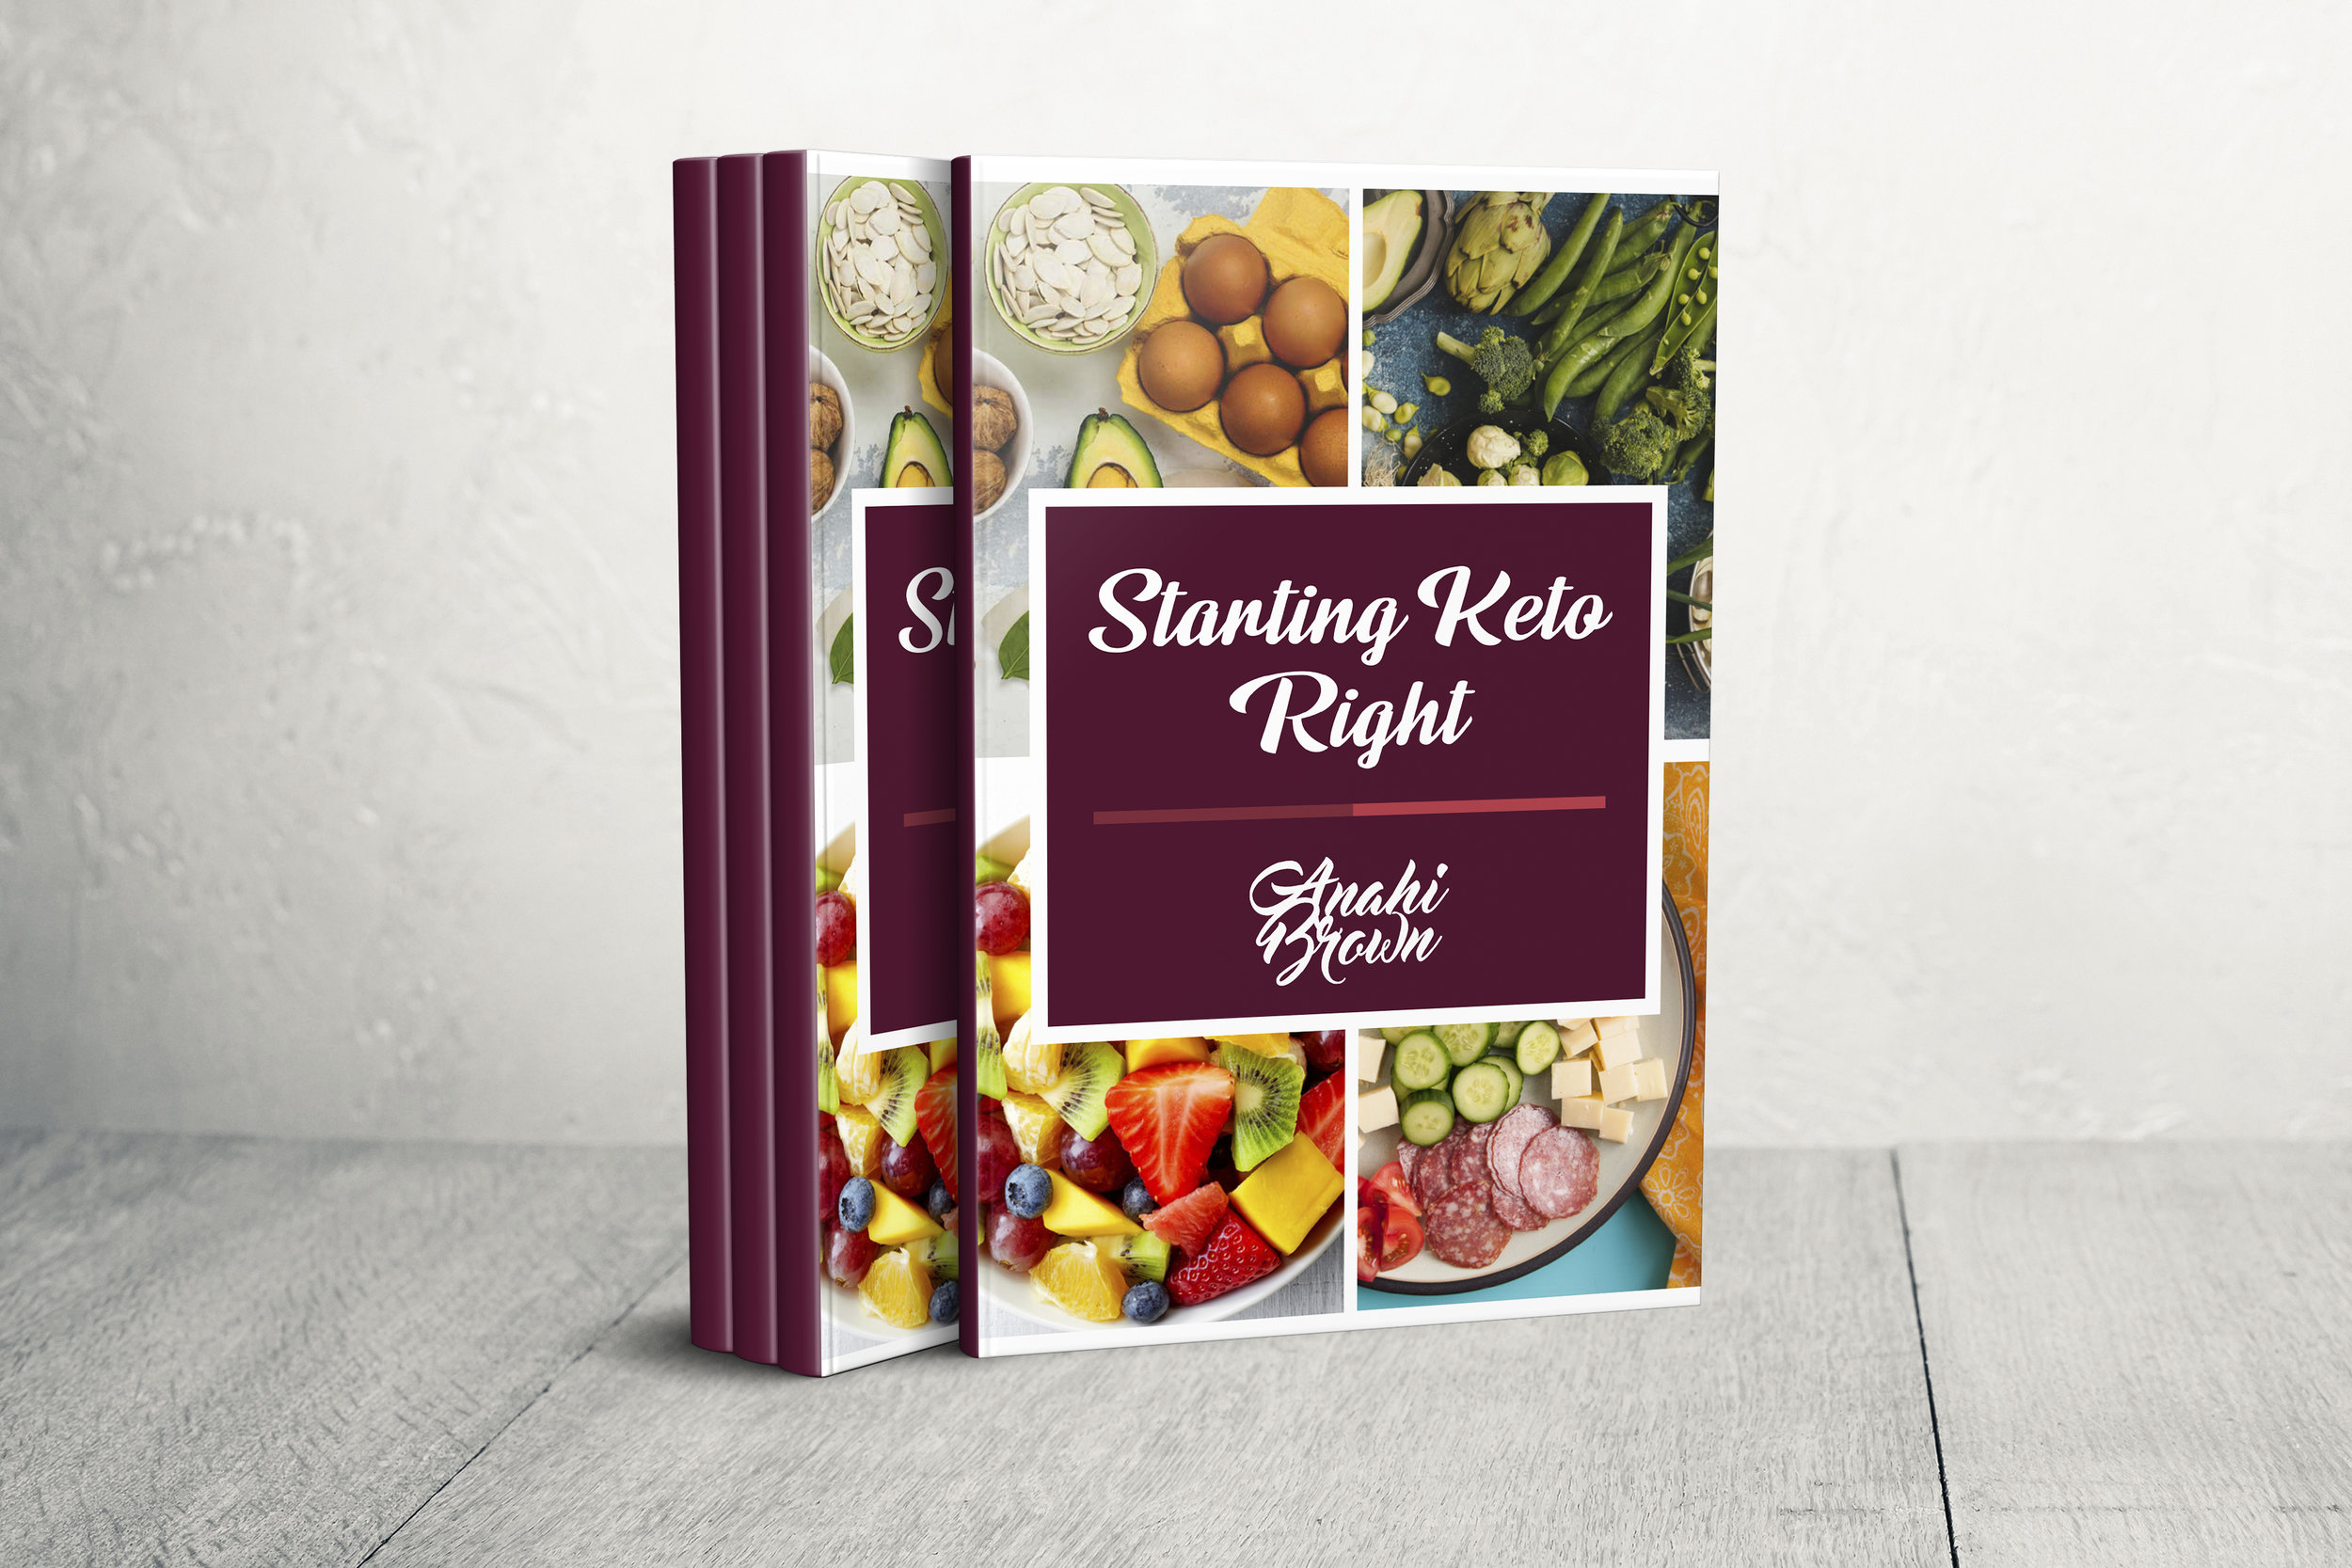 Keto 101 - Starting Keto Right! Bundle - Your Keto Coach as a book and Masterclass, so you can get the tips and info you want and deserve to start your Ketogenic journey on the best terms, empowered and inspired.Includes basic information about keto, how to troubleshoot it successfully, what to do when we struggle and what to eat to thrive on it… Plus, 3 bonus recipes!